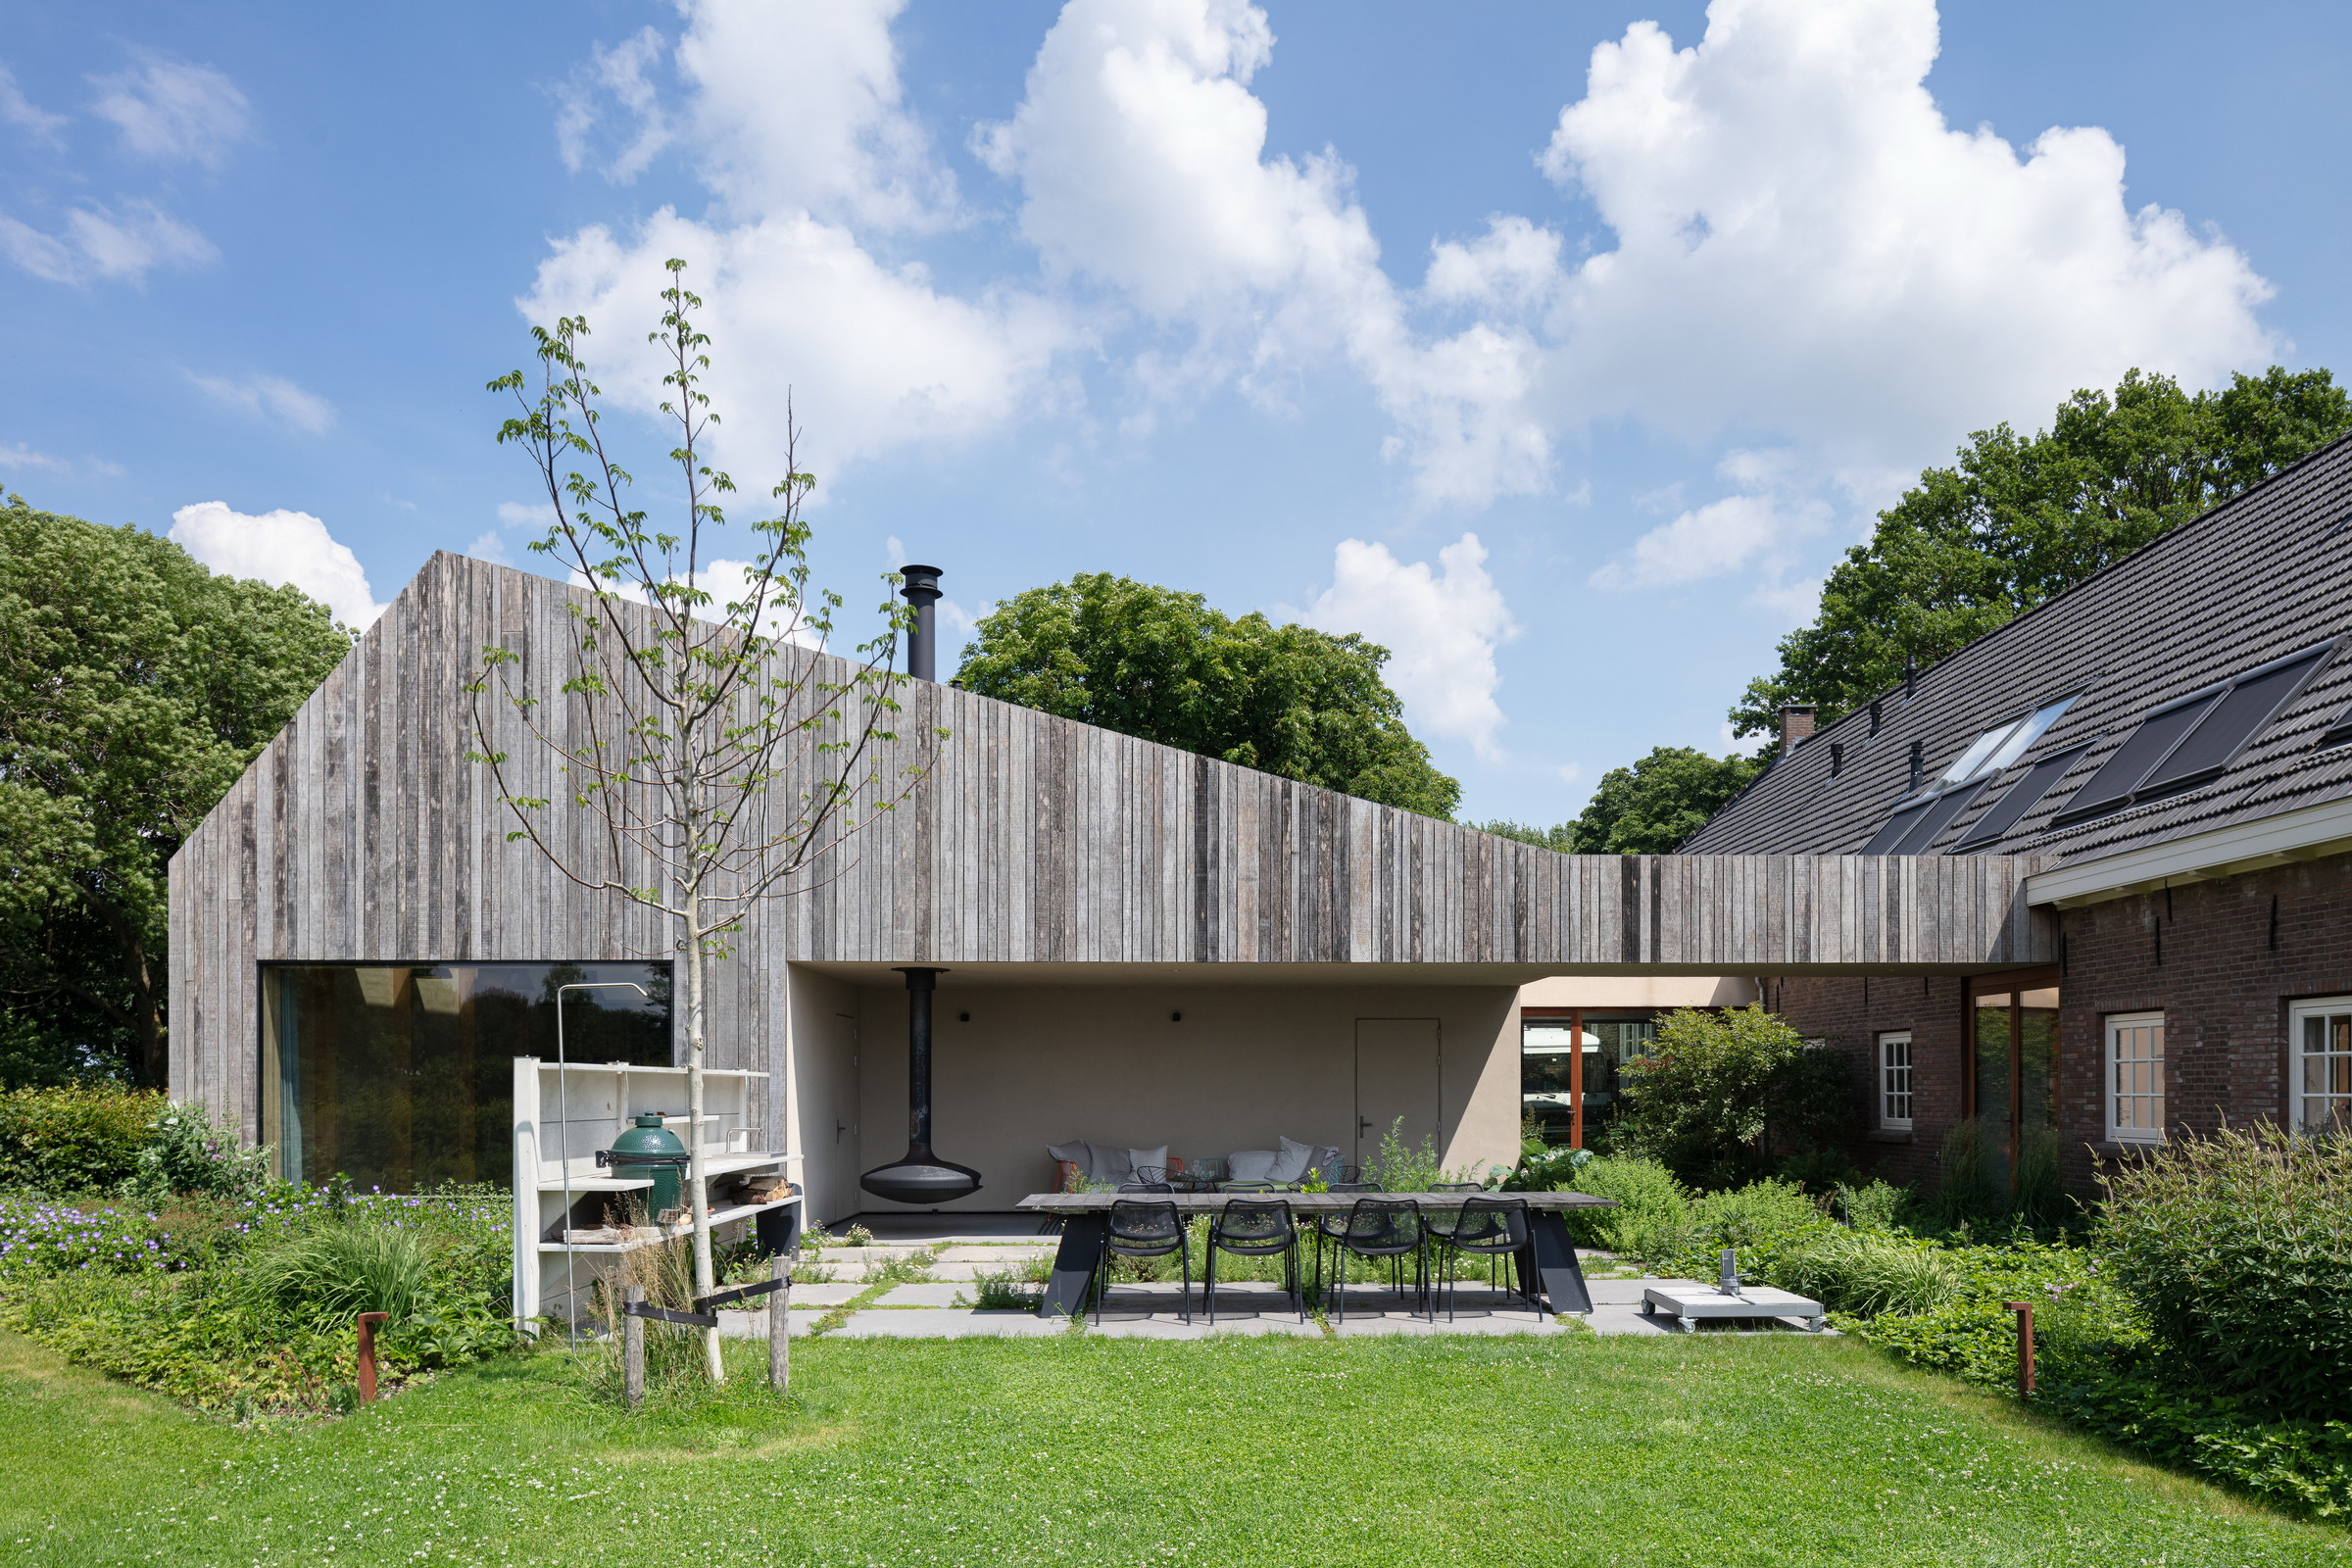 11-Zecc_Architecten-Farm_house-Utrecht-wood-concret.JPG